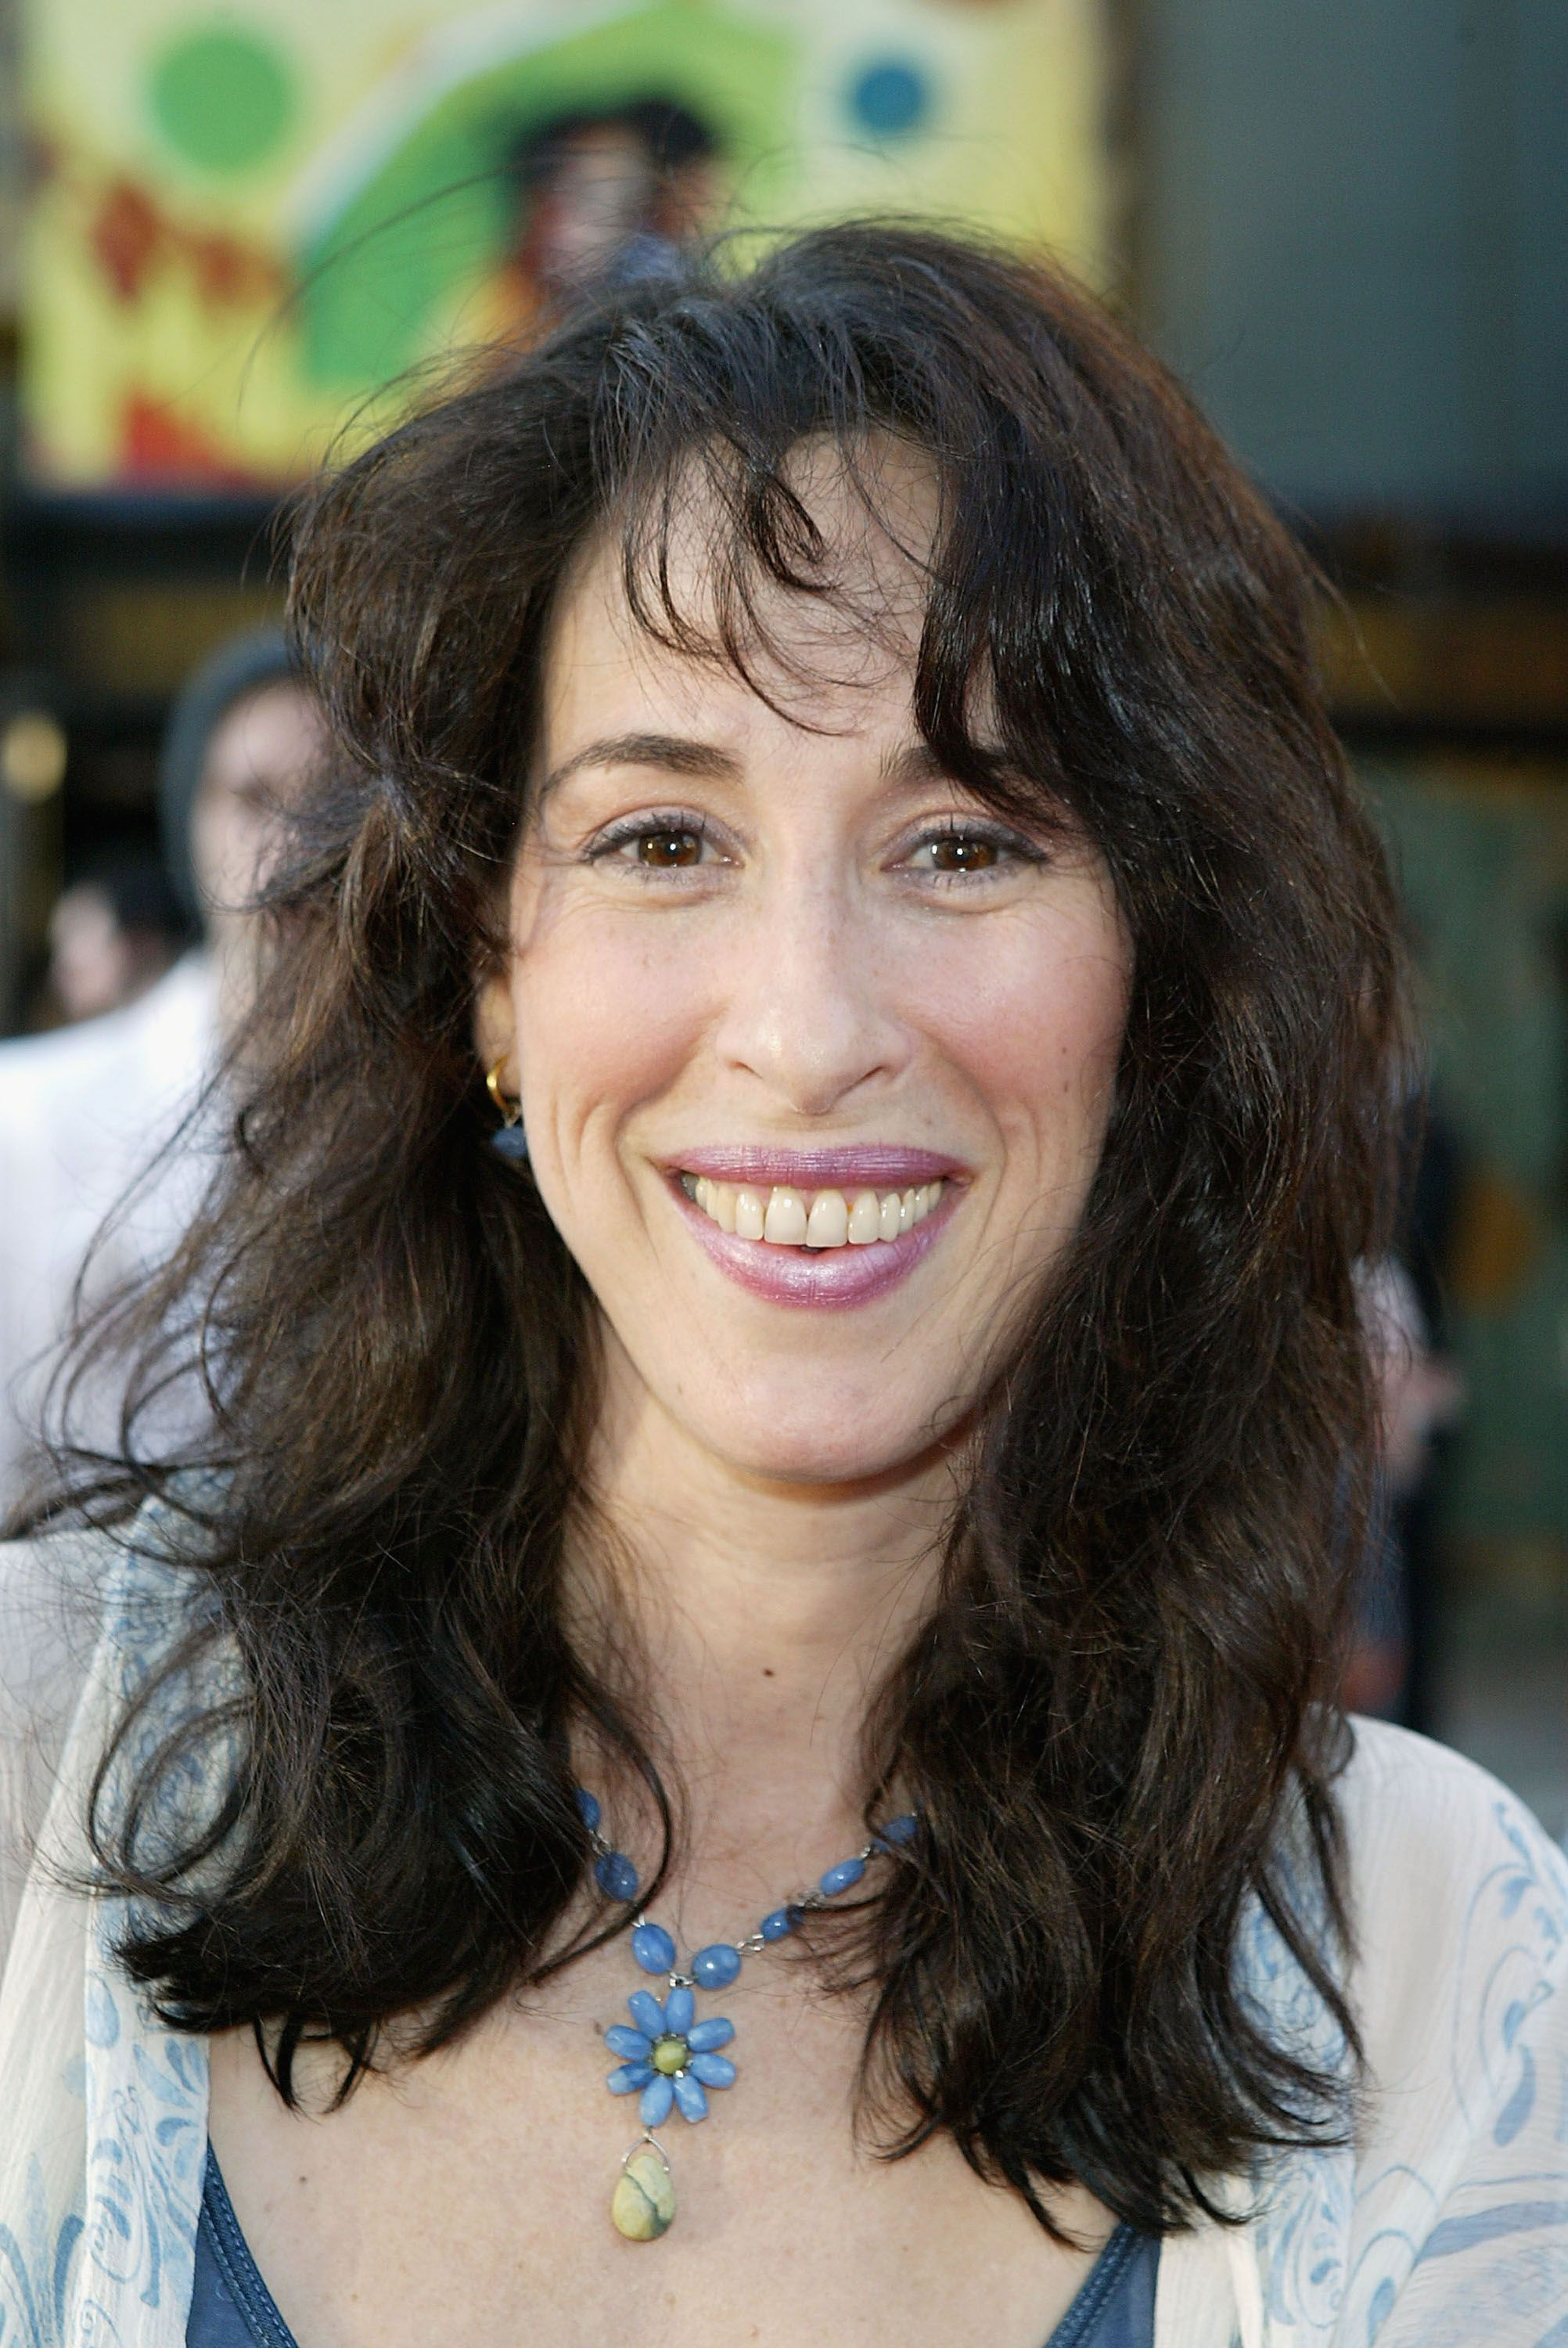 L'actrice Maggie Wheeler au Grauman's Chinese Theatre, à Hollywood, en Californie. | Photo : Getty Images